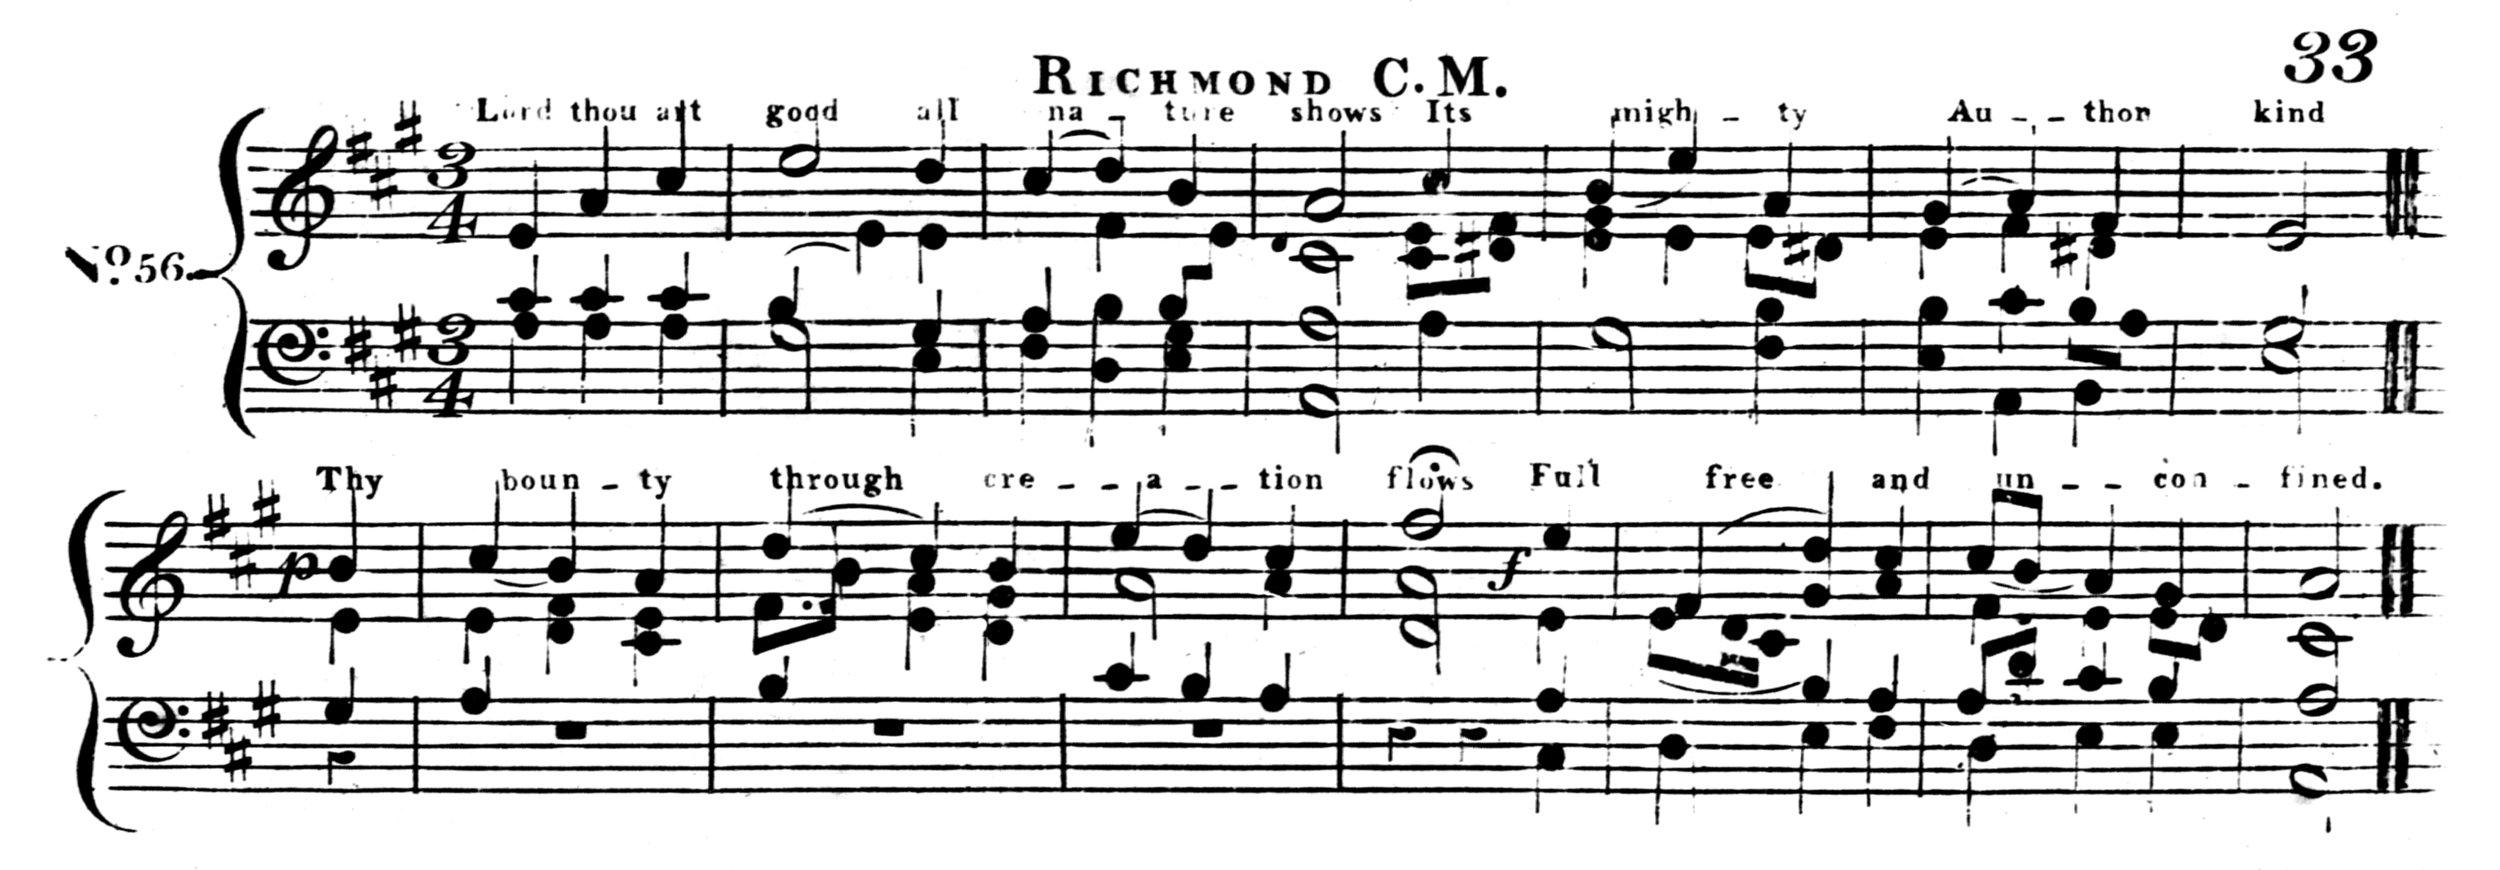 Fig. 4.  Samuel Webbe Jr.,  A Collection of Psalm Tunes Intermixed with Airs,  3rd ed. (London: Clementi & Co., 1816).